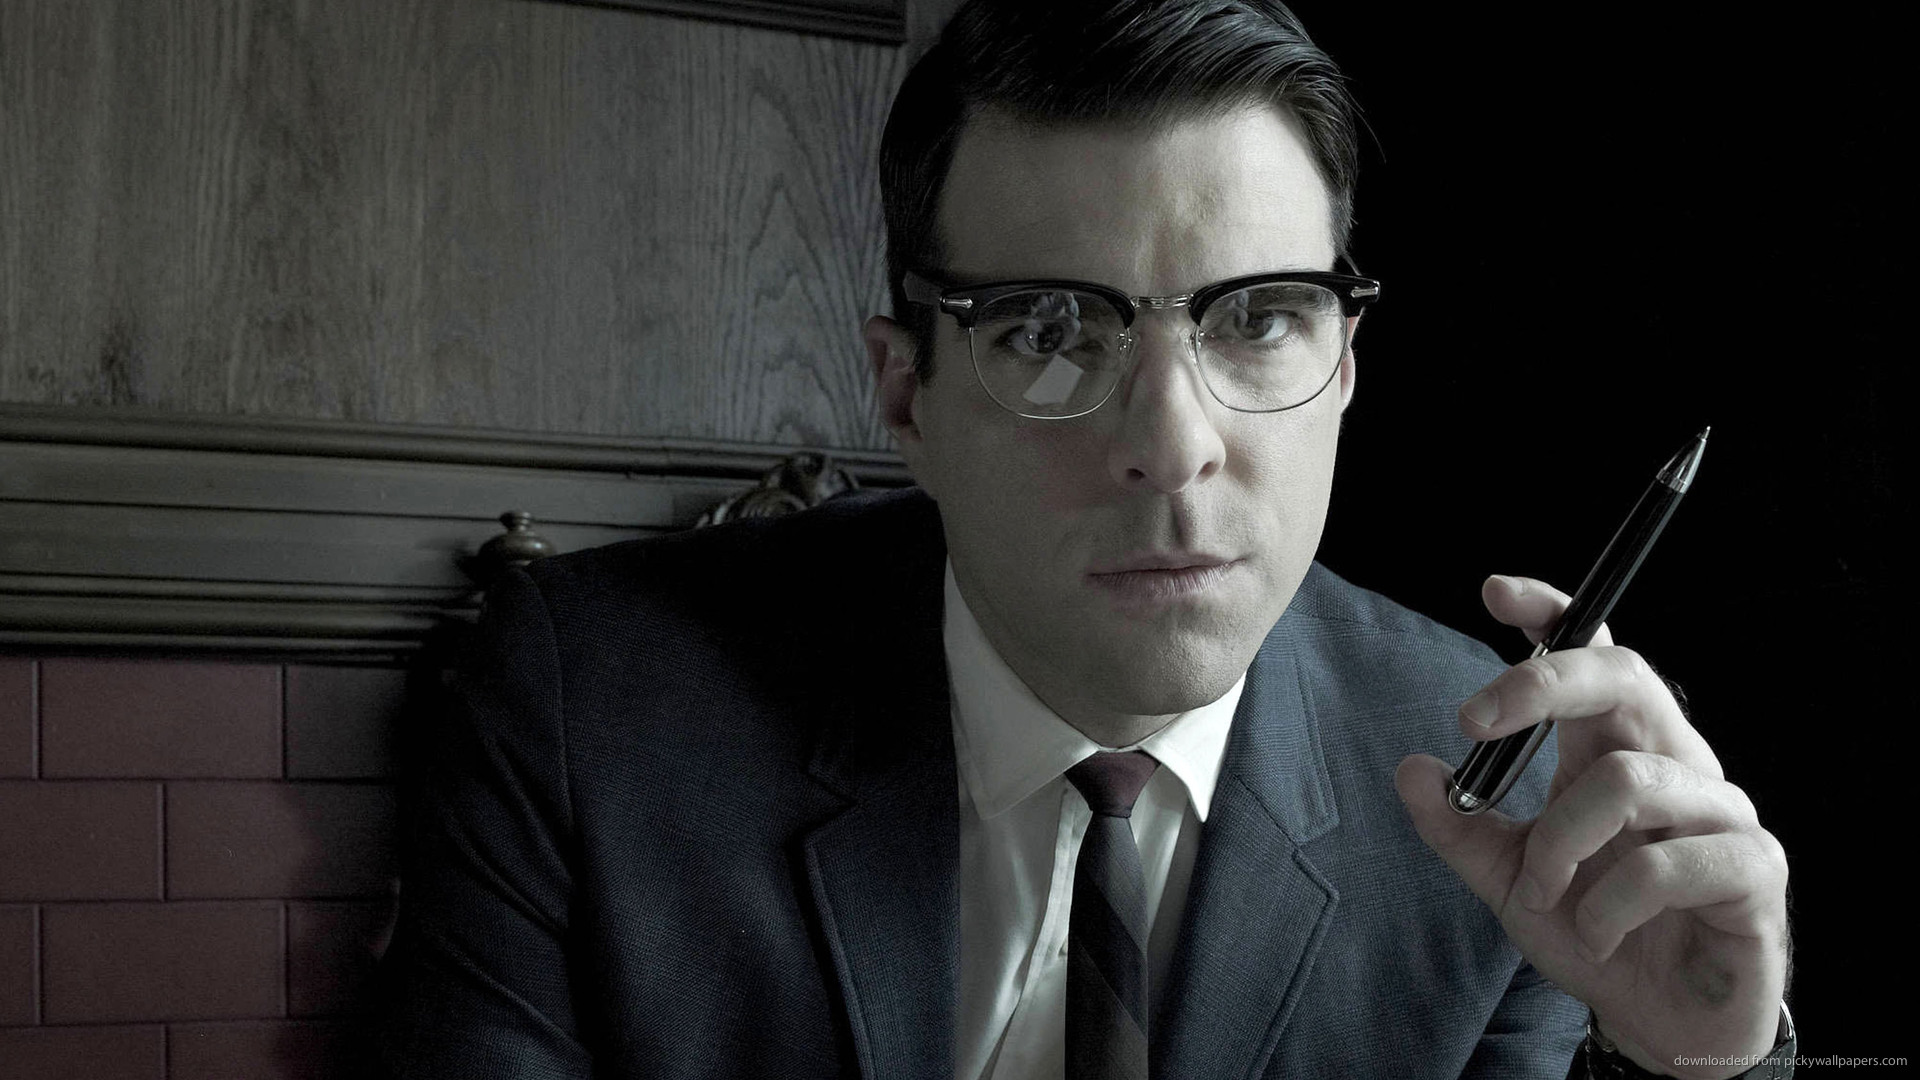 1920x1080 - Zachary Quinto Wallpapers 4